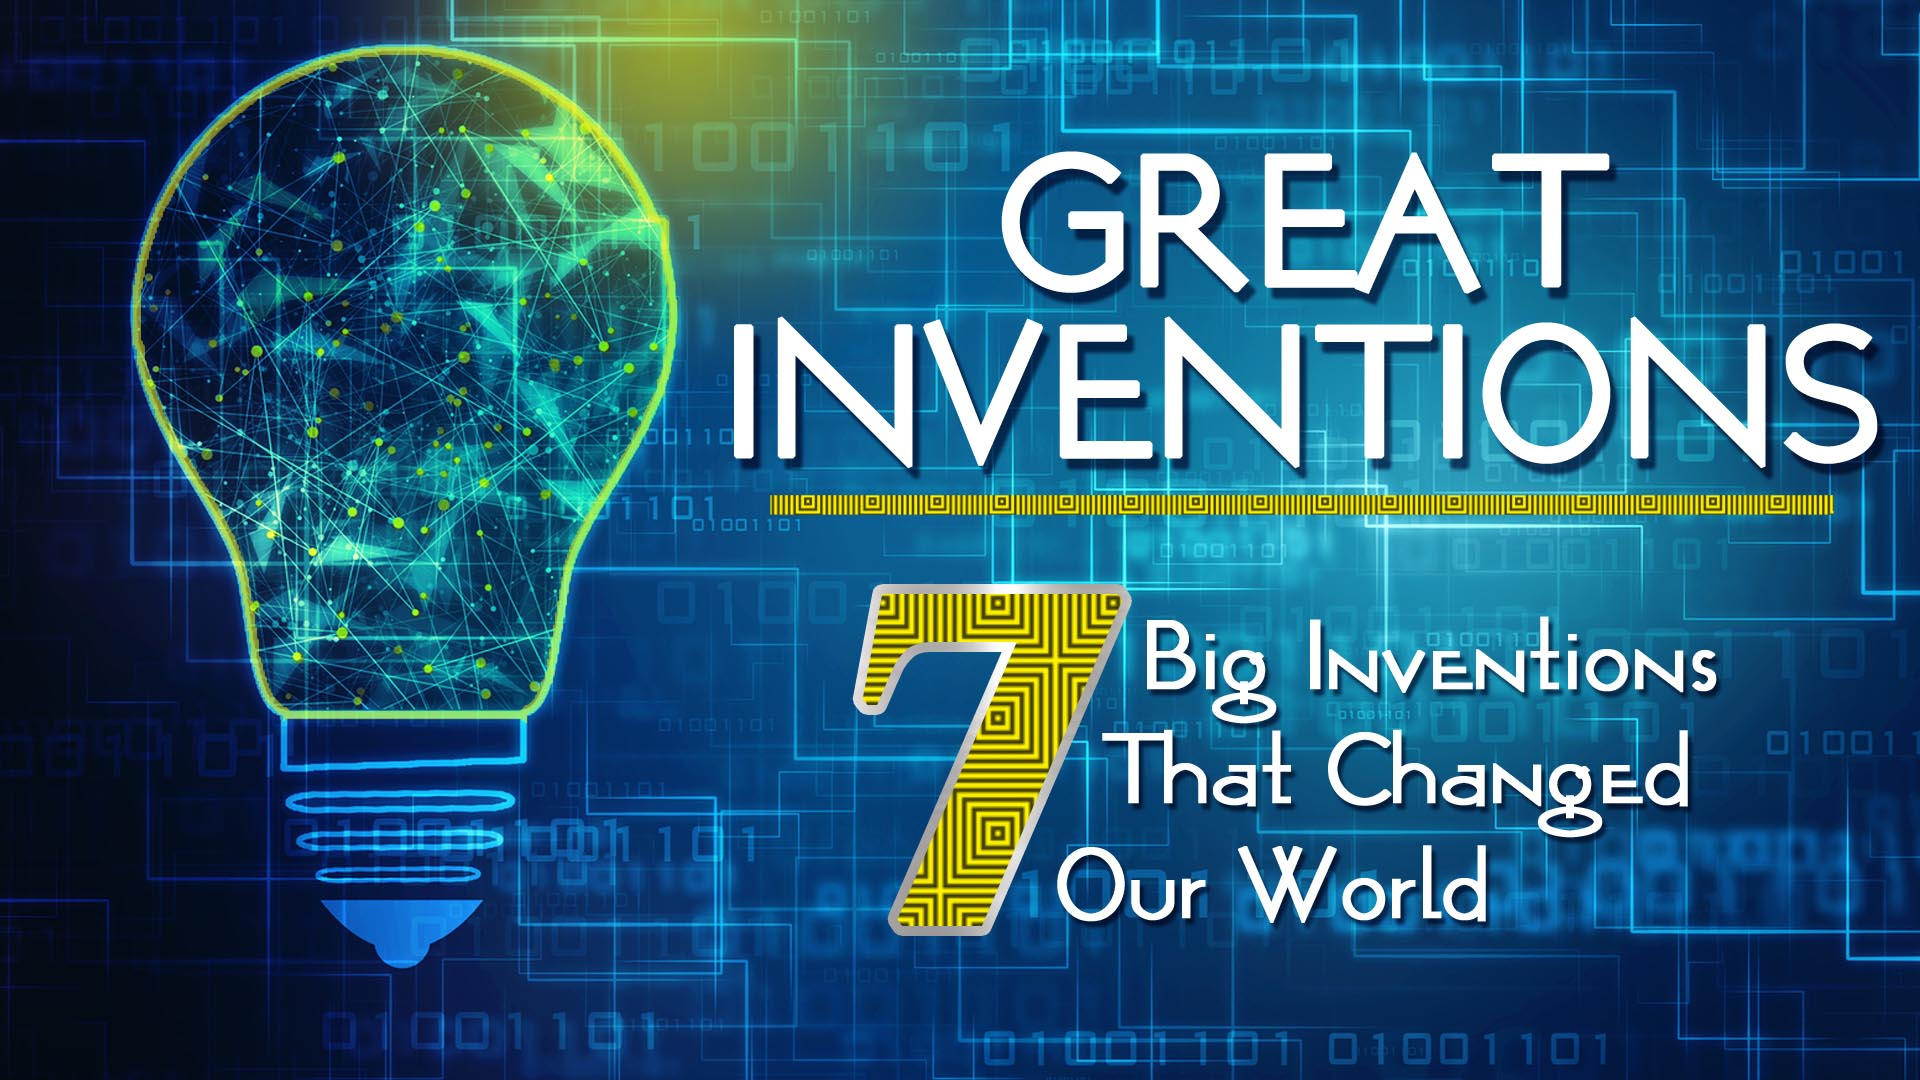 Great Inventions: 7 Big Inventions That Changed Our World -